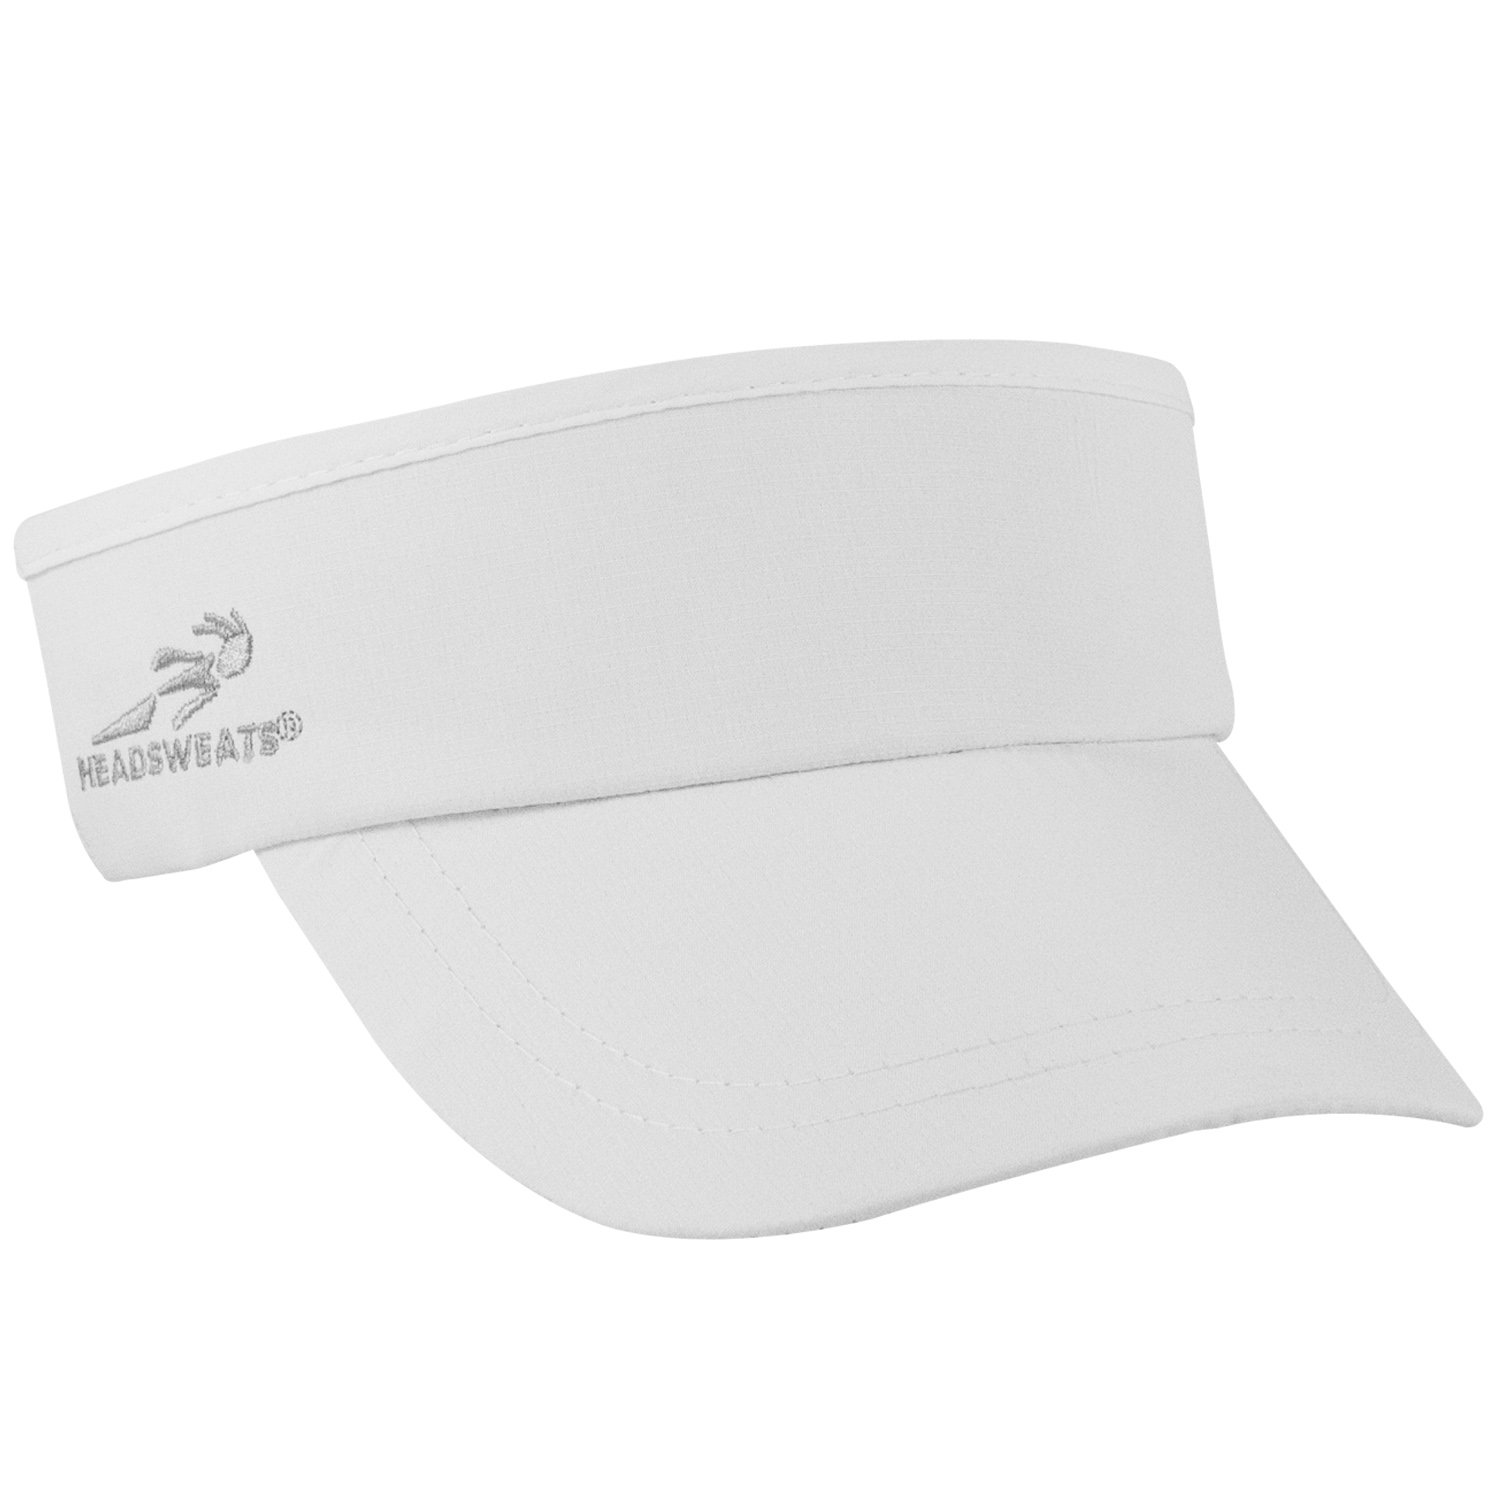 2ab1de8a93968 Details about Headsweats Woven SuperVisor Performance Running Outdoor  Sports Visor